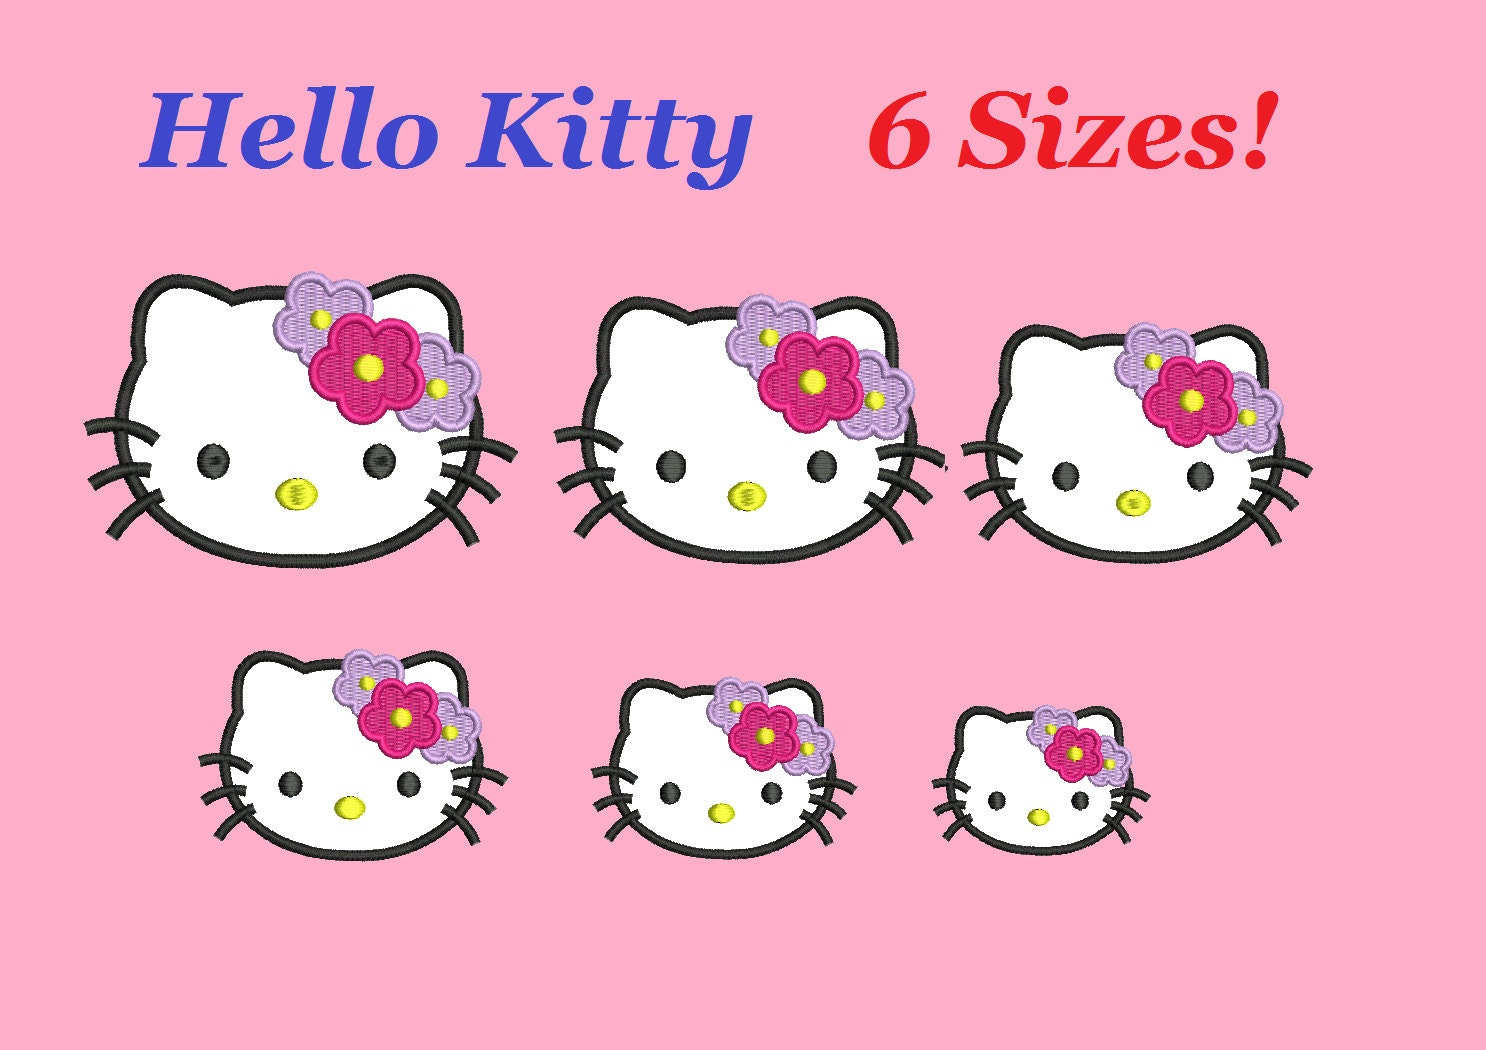 Hello kitty embroidery designs applique by smartembroideryweb